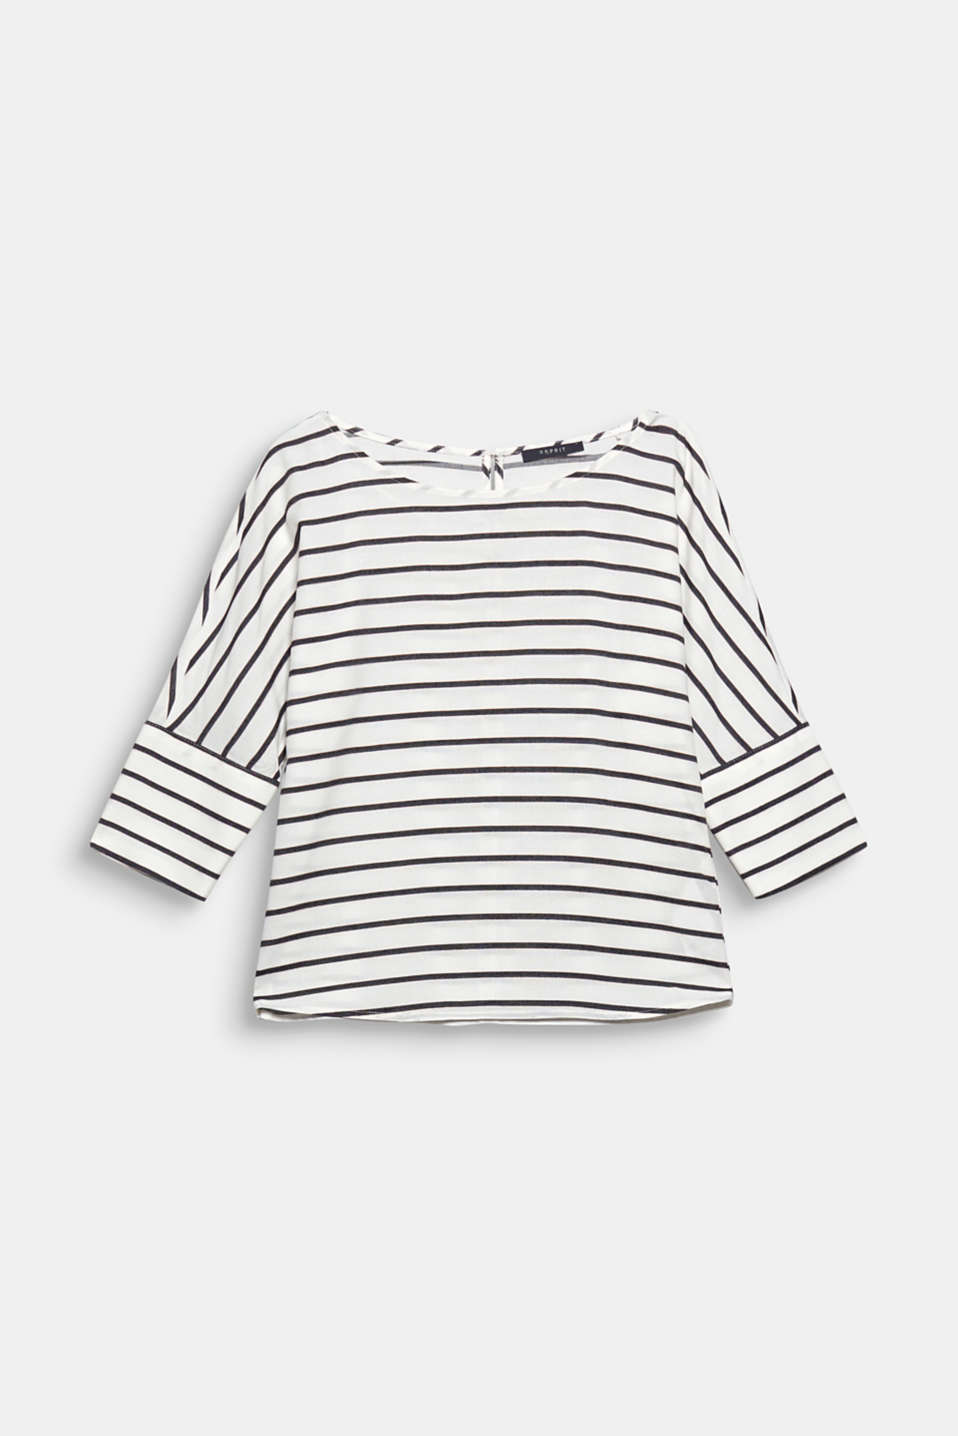 This blouse with 3/4-length batwing sleeves and wide cuffs is loose, casual and striped!